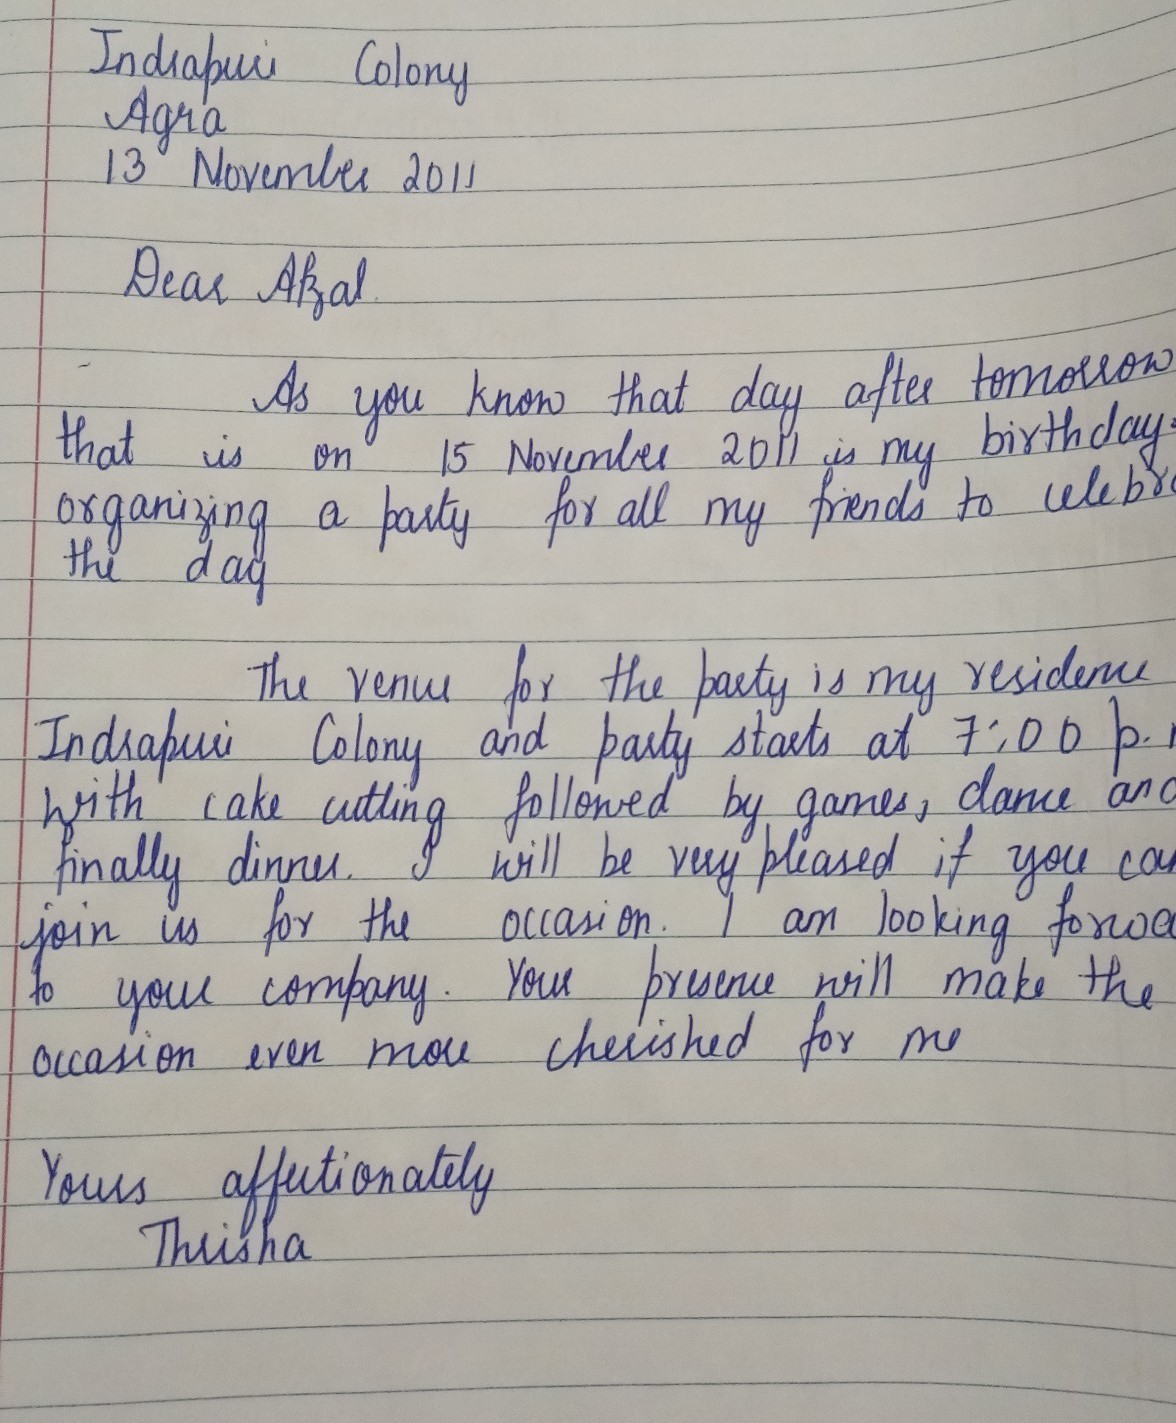 a letter to you friend afzal who lives